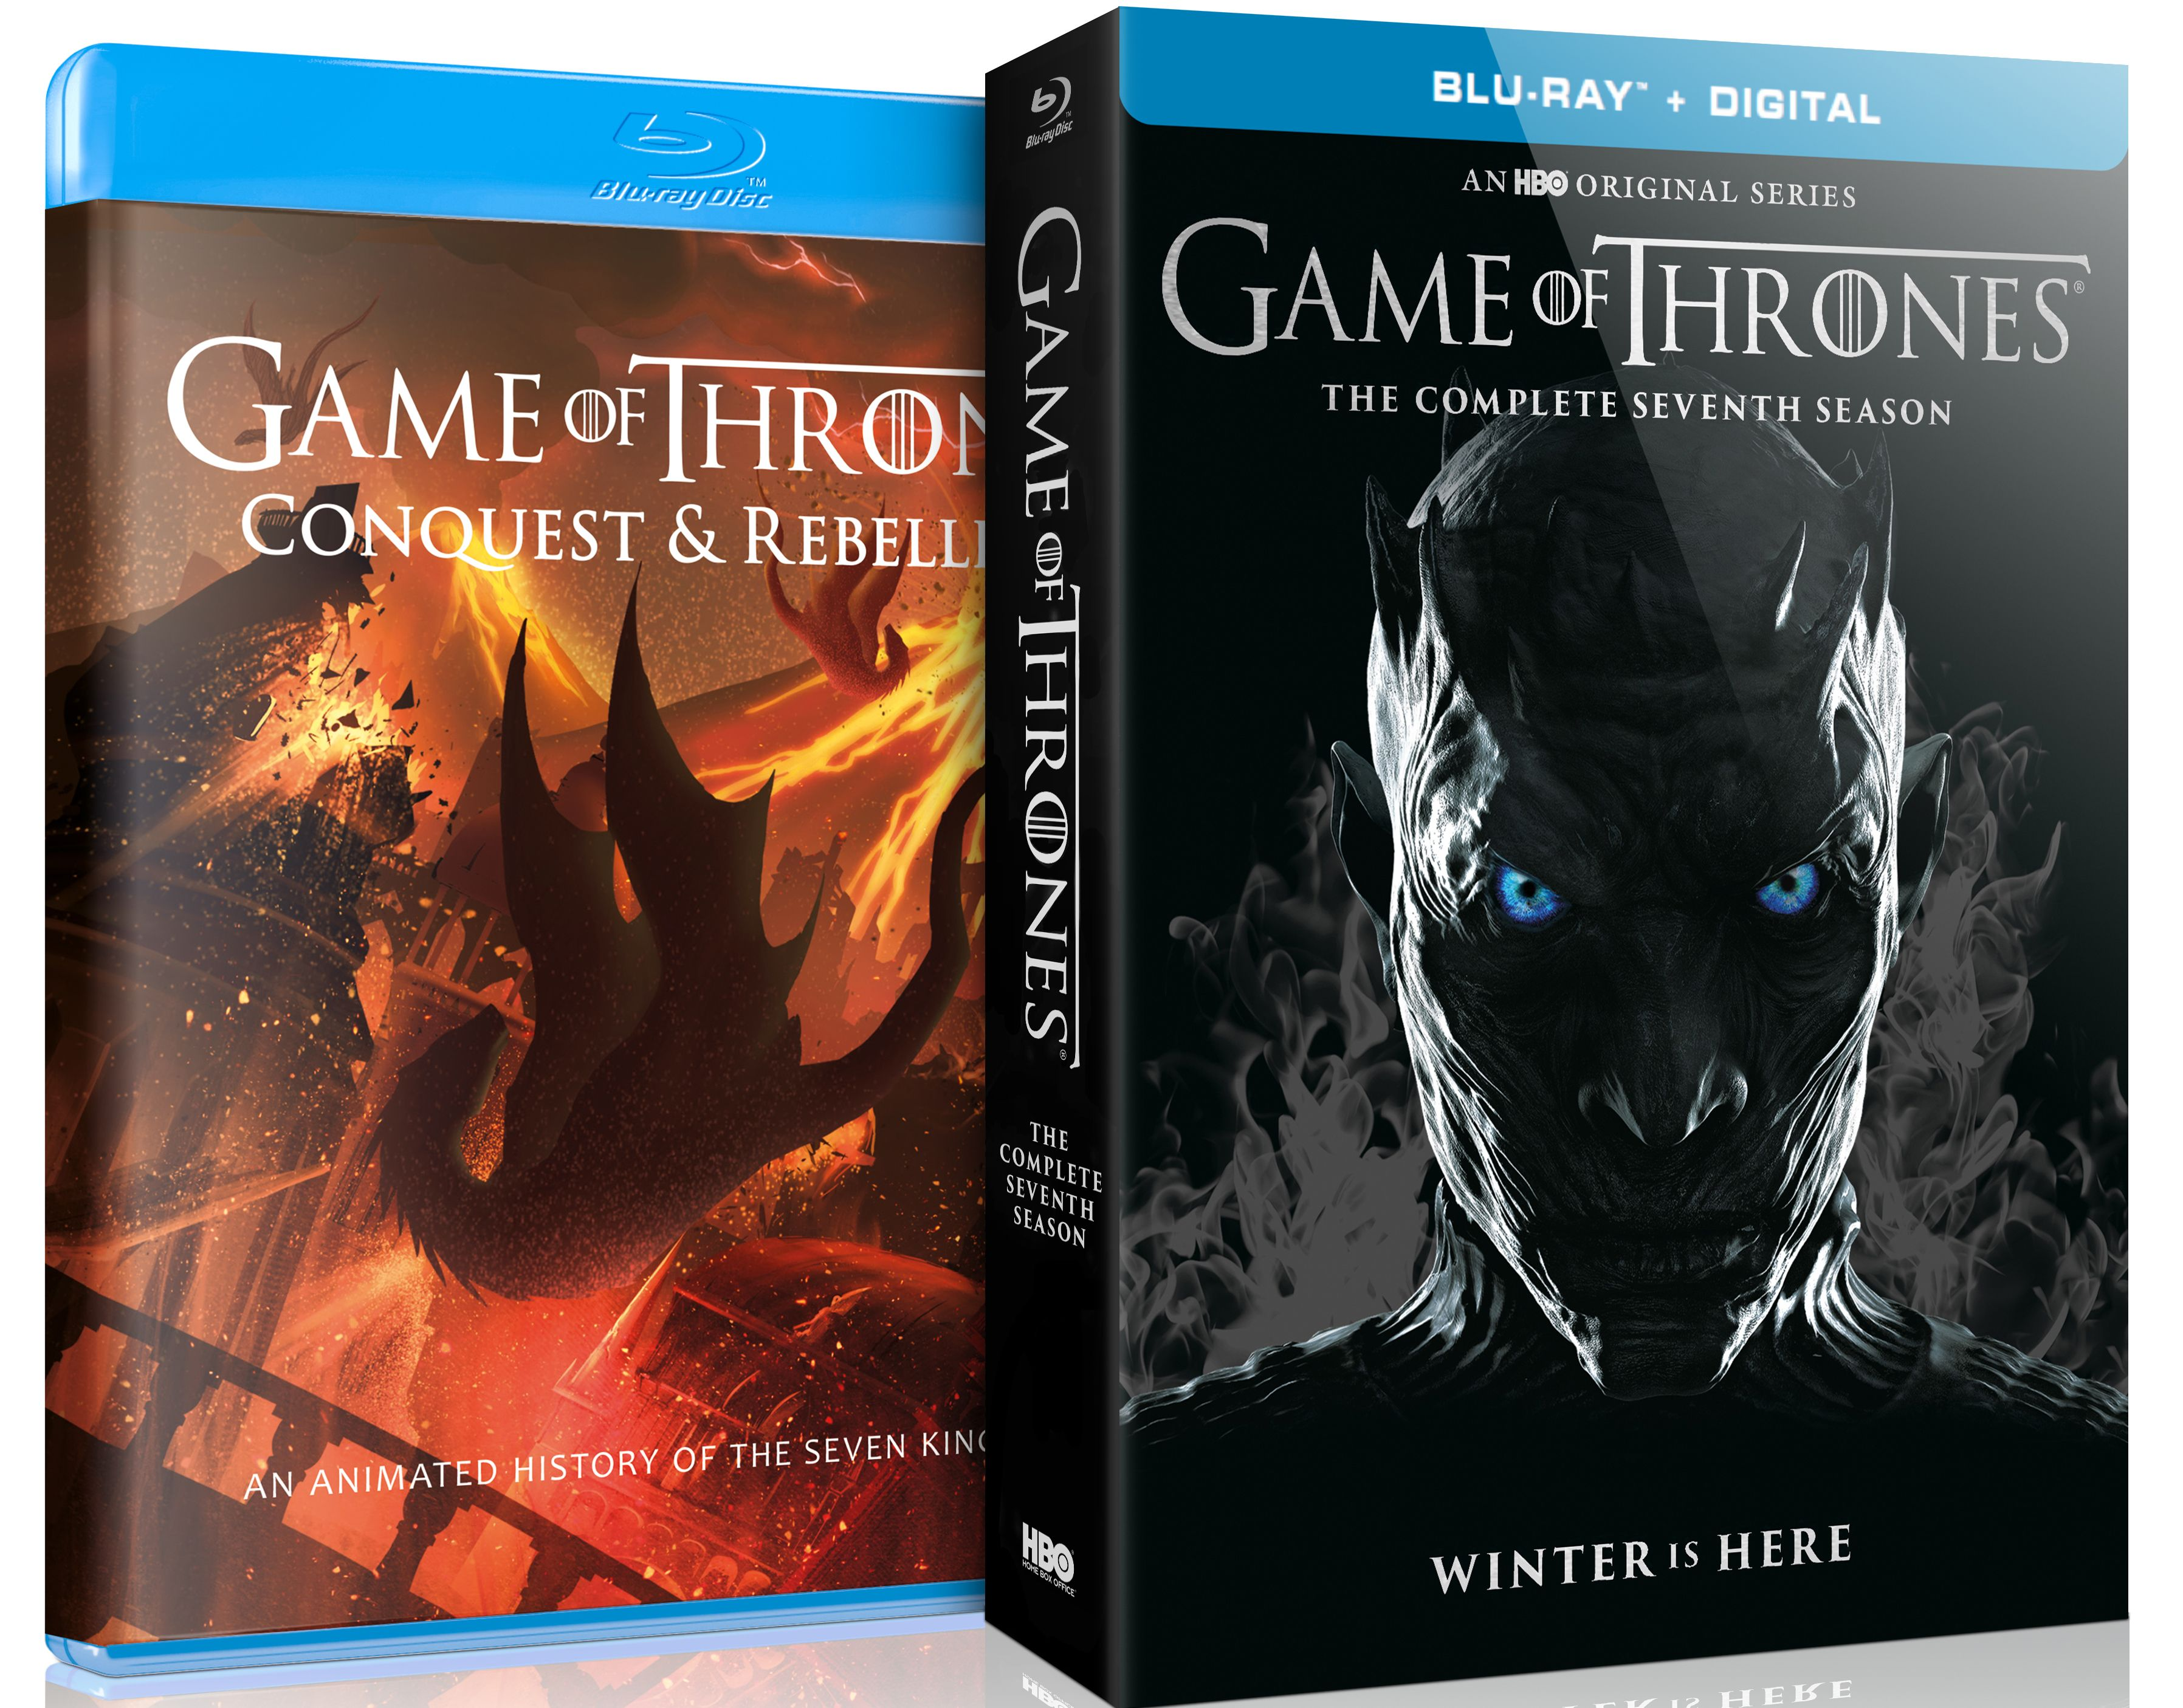 Game of Thrones: The Complete Seventh Season (Blu-ray + Digital HD) by